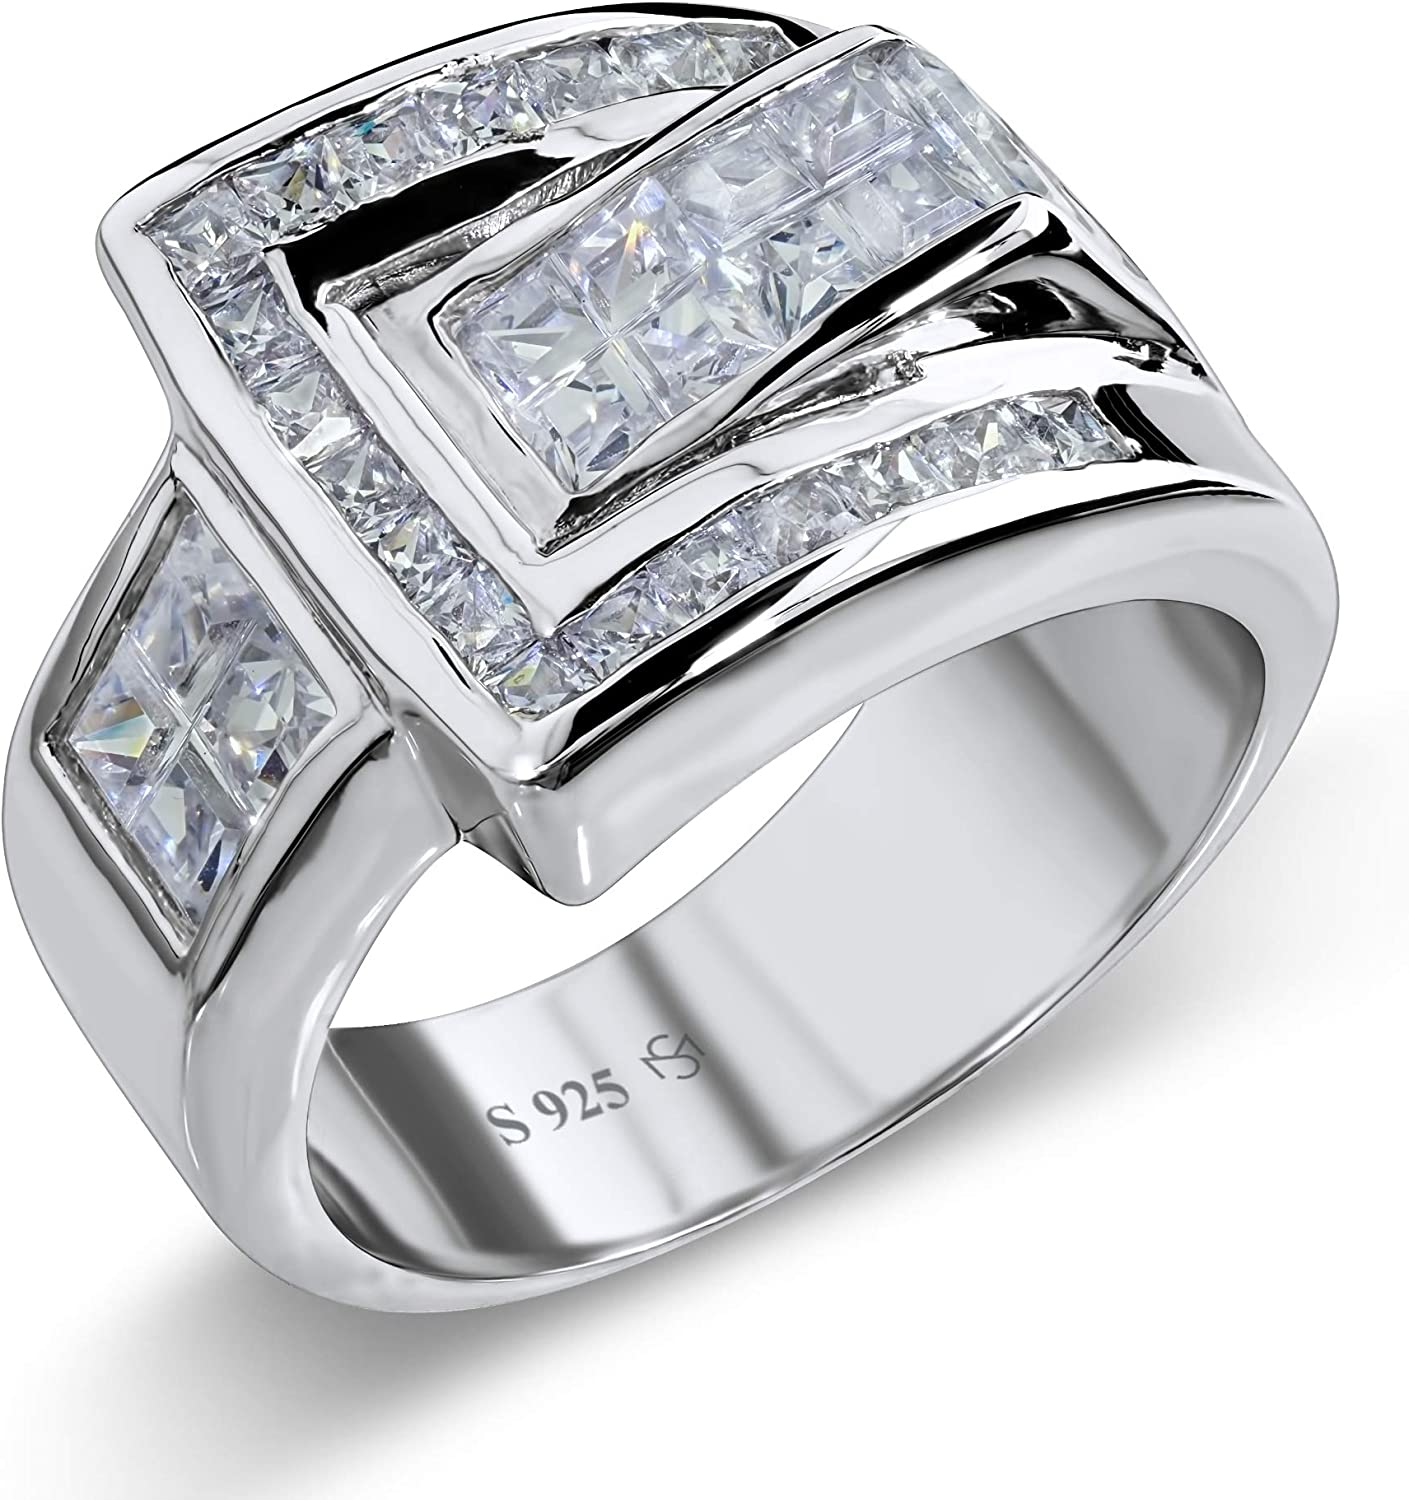 [2-5 Days Delivery] Men's Elegant Sterling Silver .925 Designer Ring with Fancy Cubic Zirconia (CZ) Invisible and Channel Set Stones, Platinum Plated. By Sterling Manufacturers